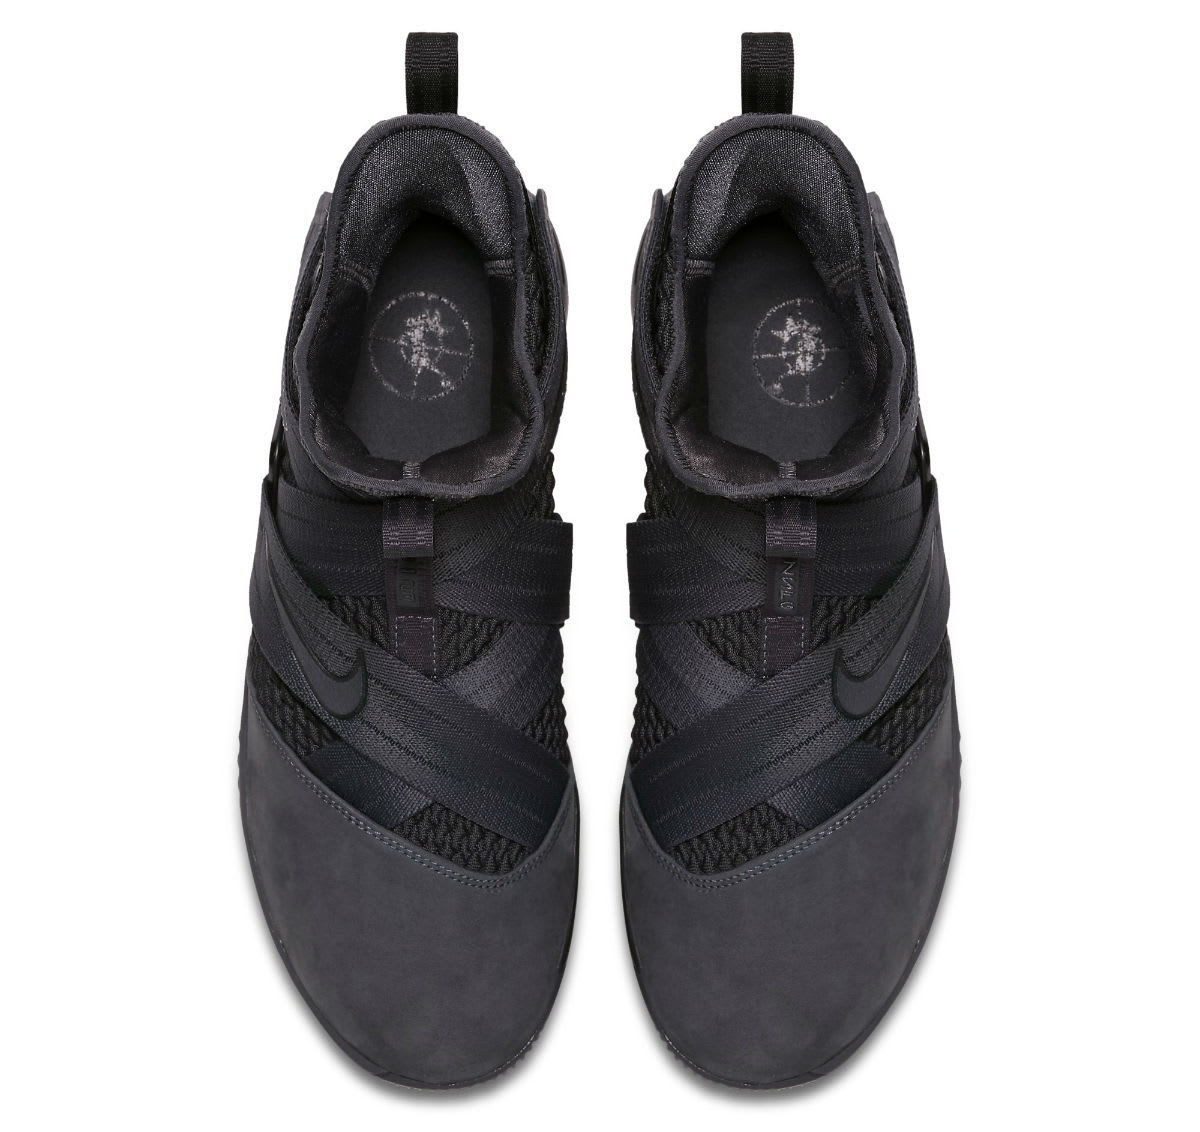 Nike LeBron Soldier 12 XII Zero Dark Thirty Triple Black Release Date AO4054-002 Top